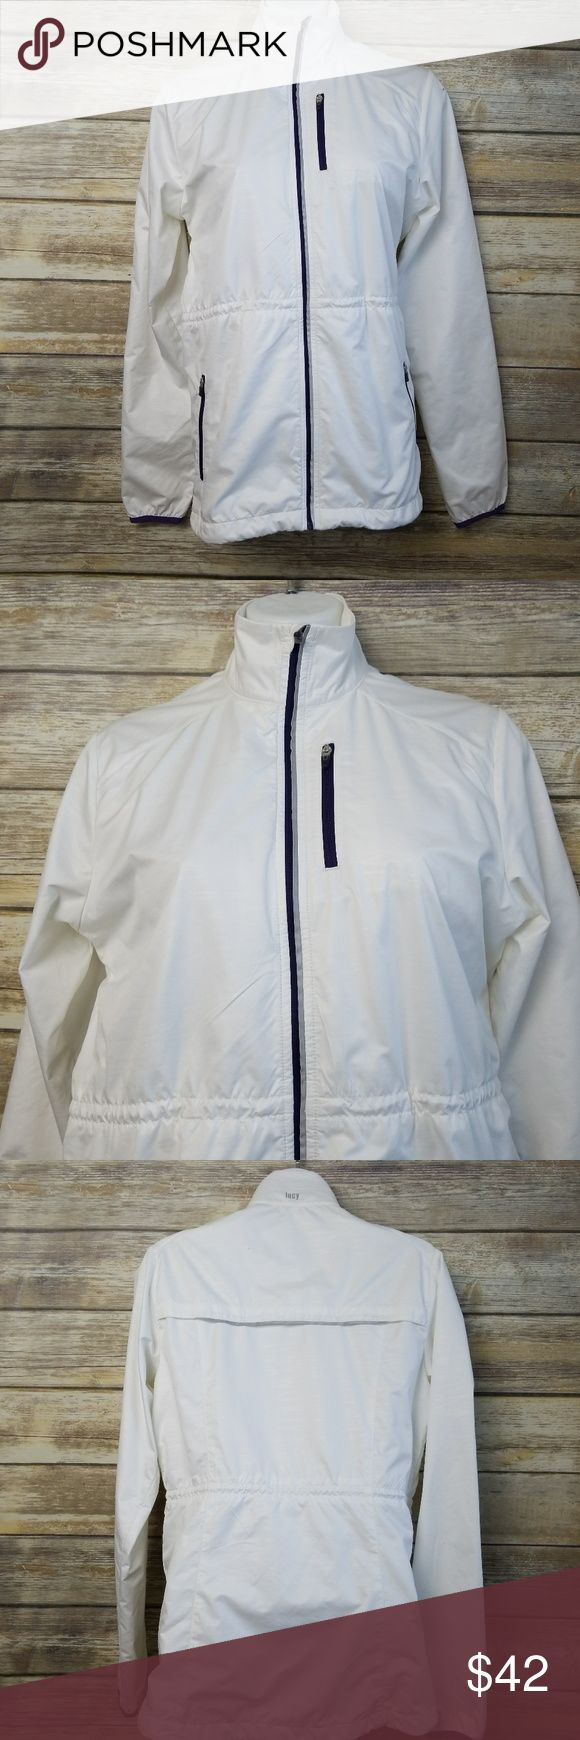 """Lucy White Purple Lined Running Vented Windbreaker Lucy White Purple Lined Womens Running Exercise Vented Windbreaker Jacket Small No rips, stains, smoke free home.  Pit to pit: 19"""" Shoulder to hem: 25"""" Lucy Jackets & Coats"""